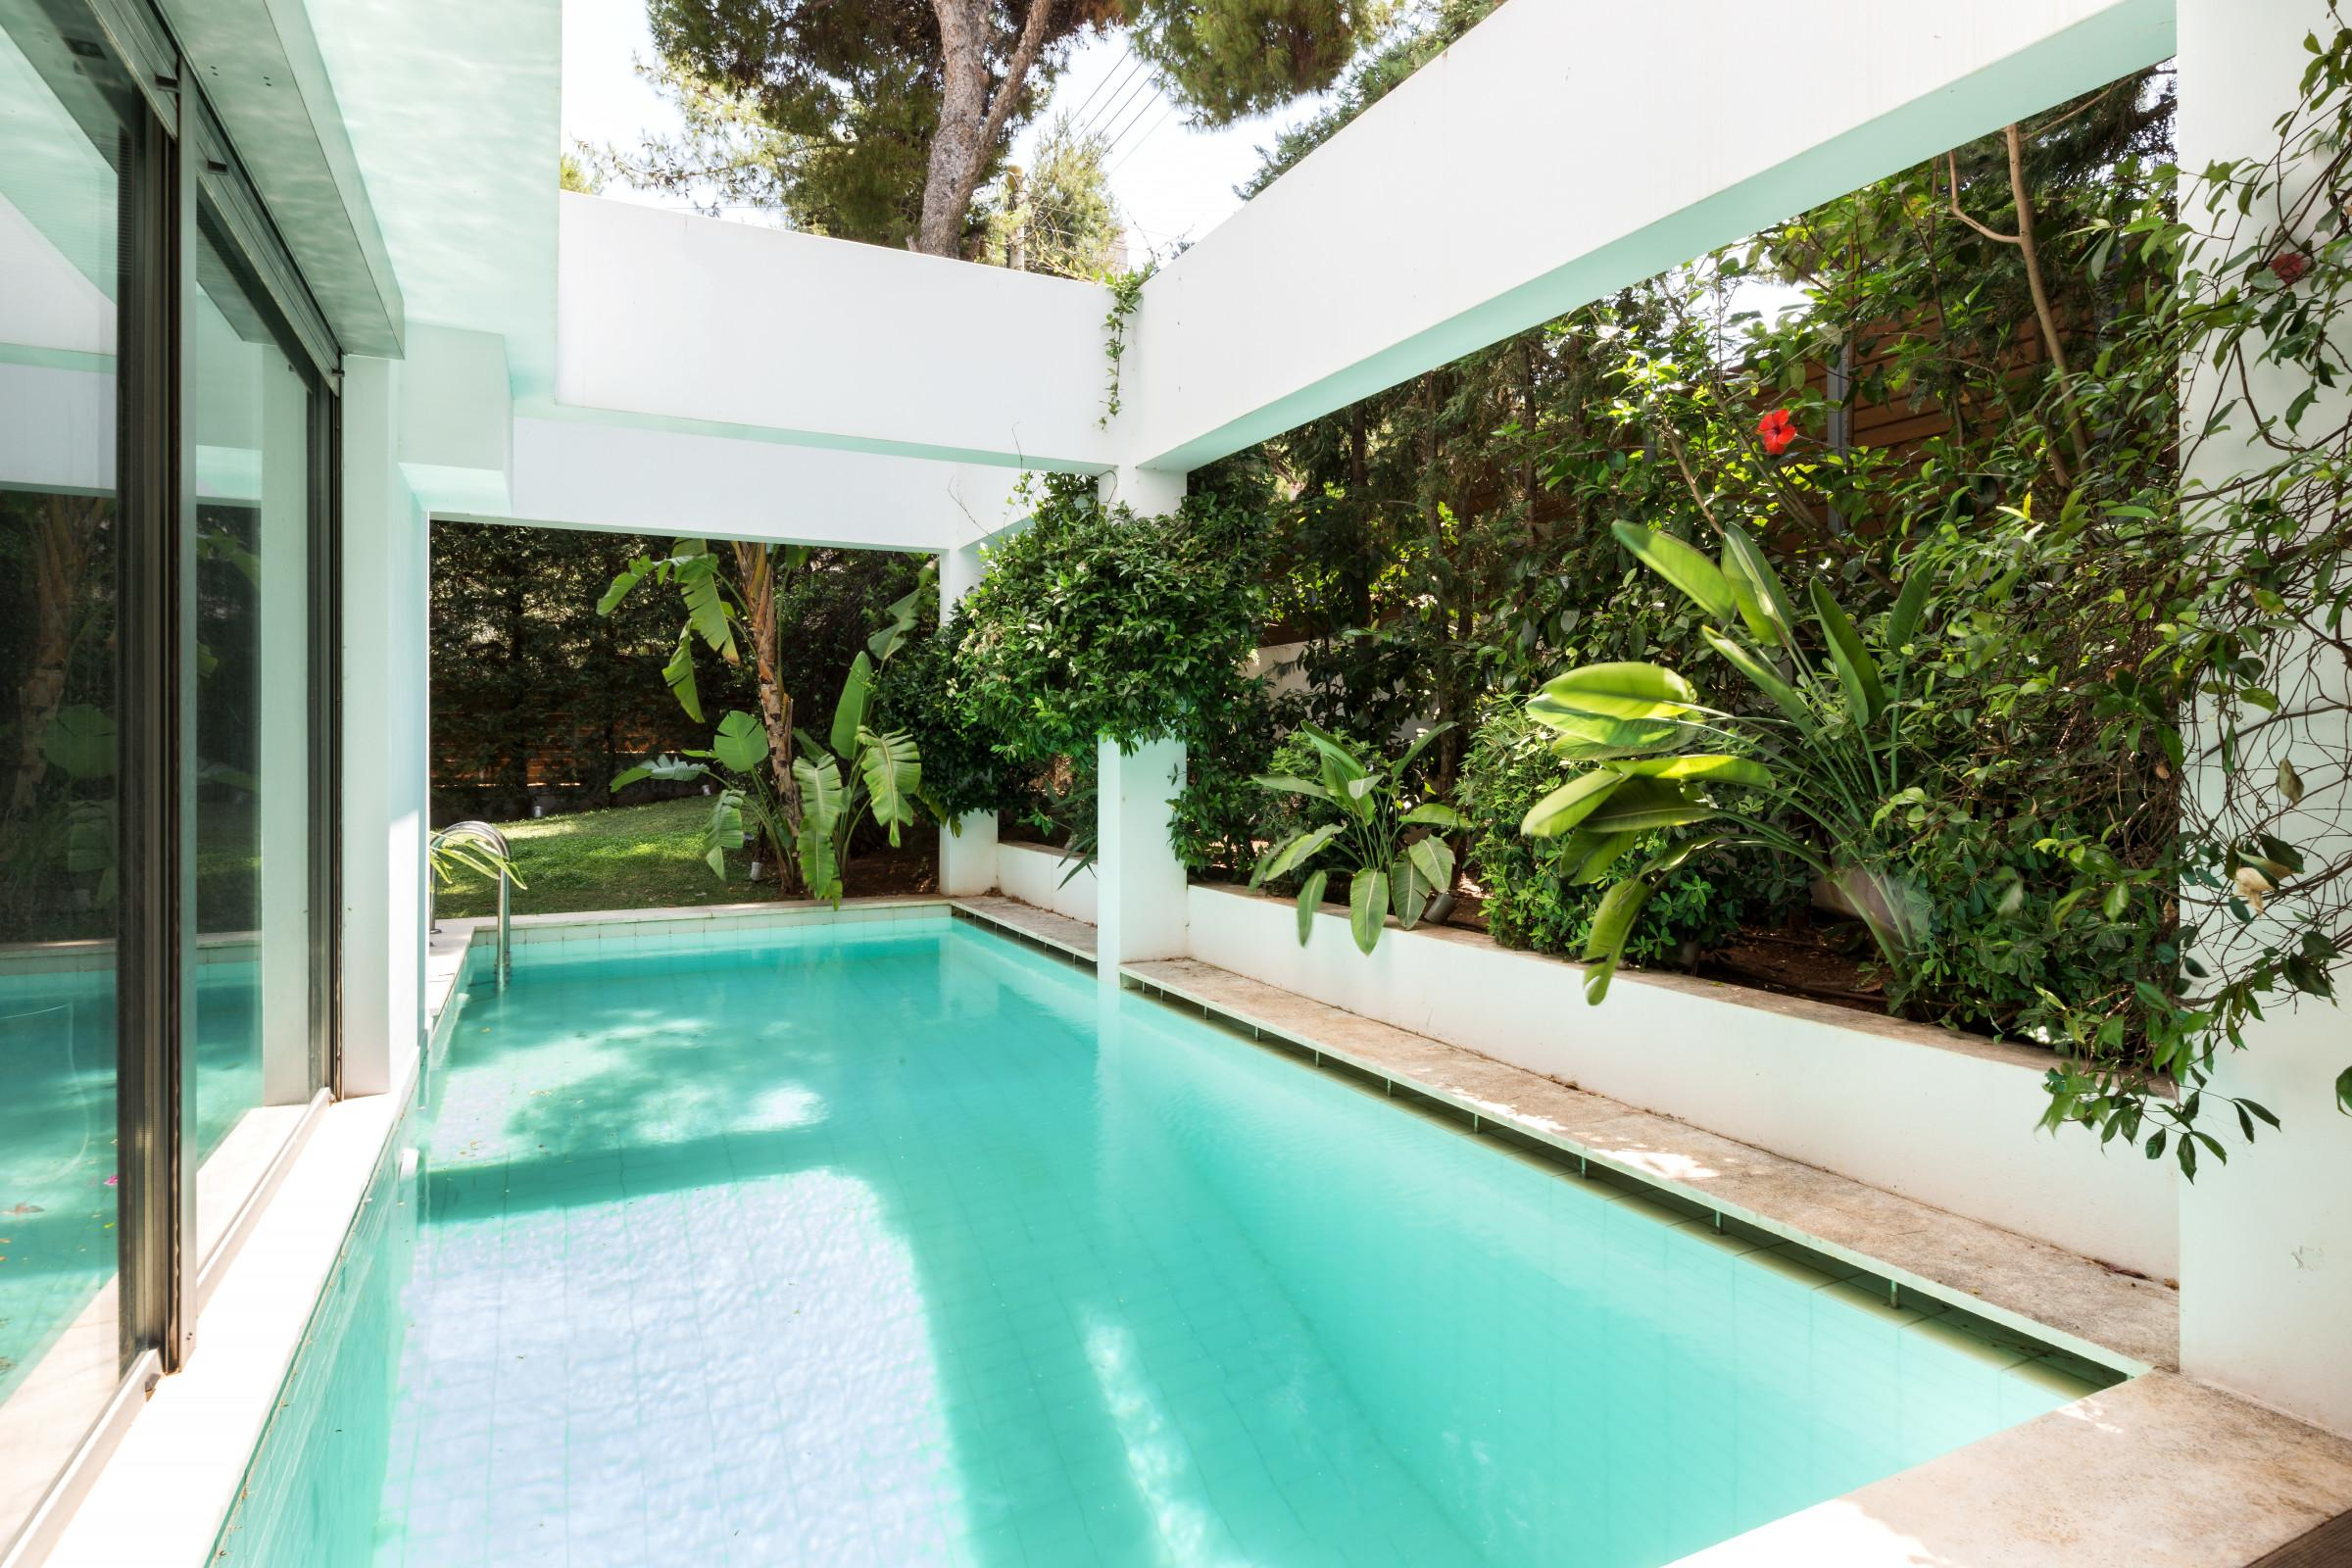 Property Image 1 - Luxury Condo with Private Pool and Garden 5 min From Beach